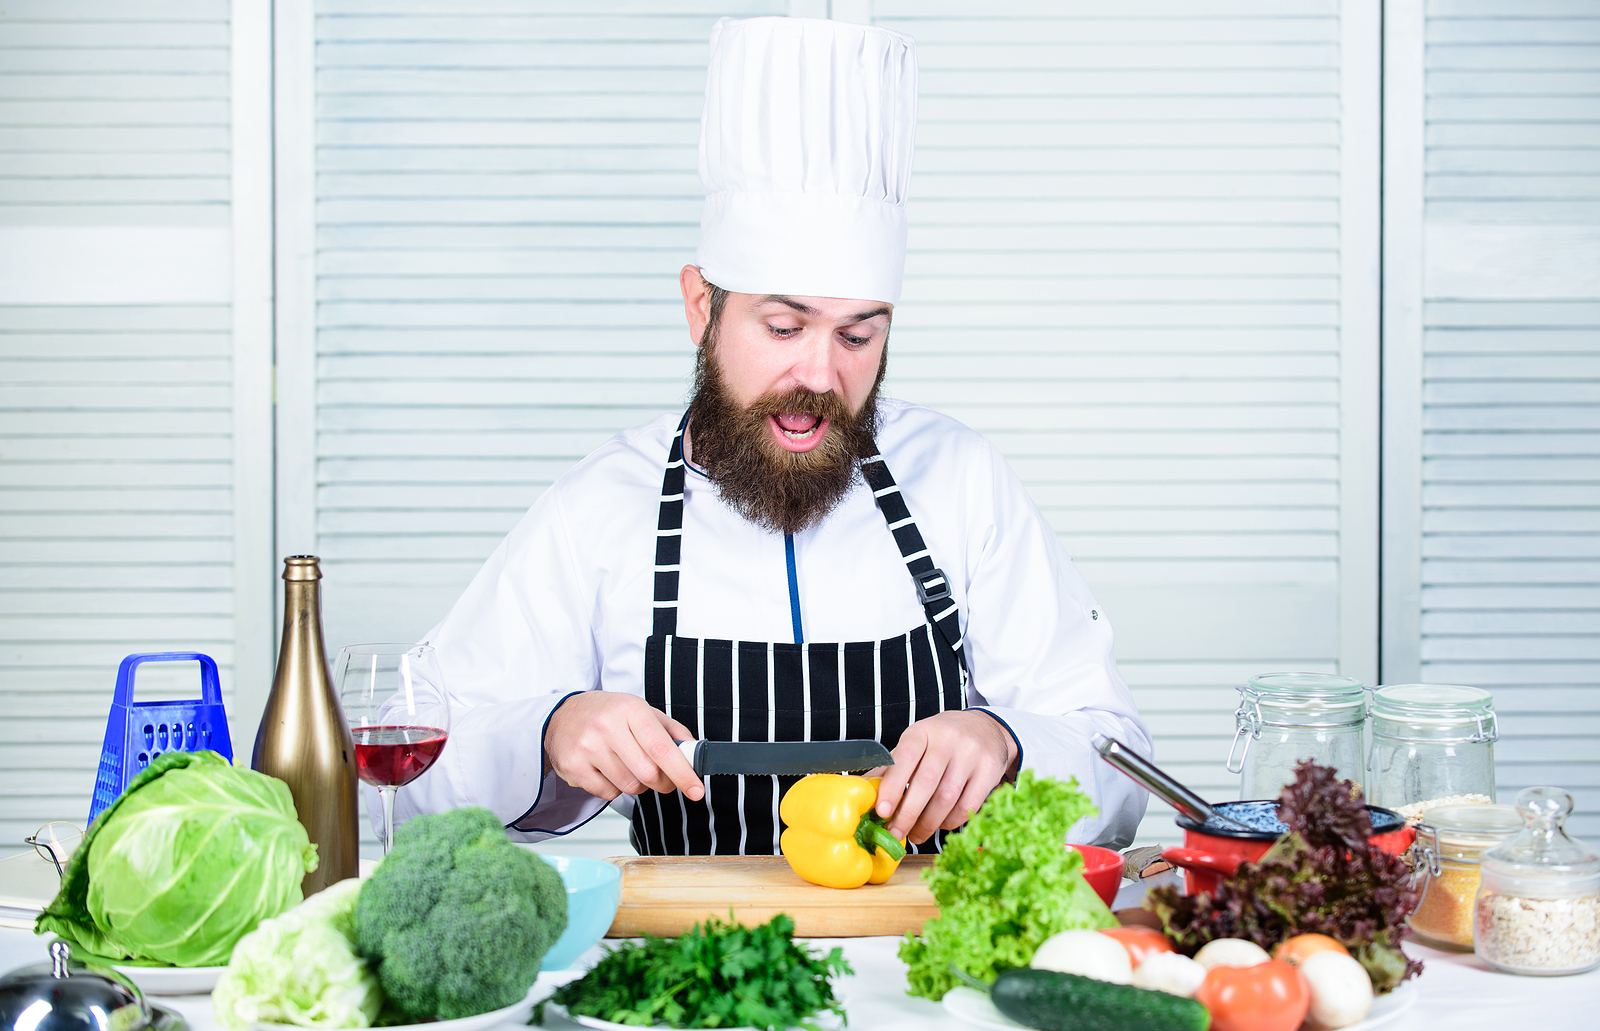 Get These Ingredients for Great Customer Service